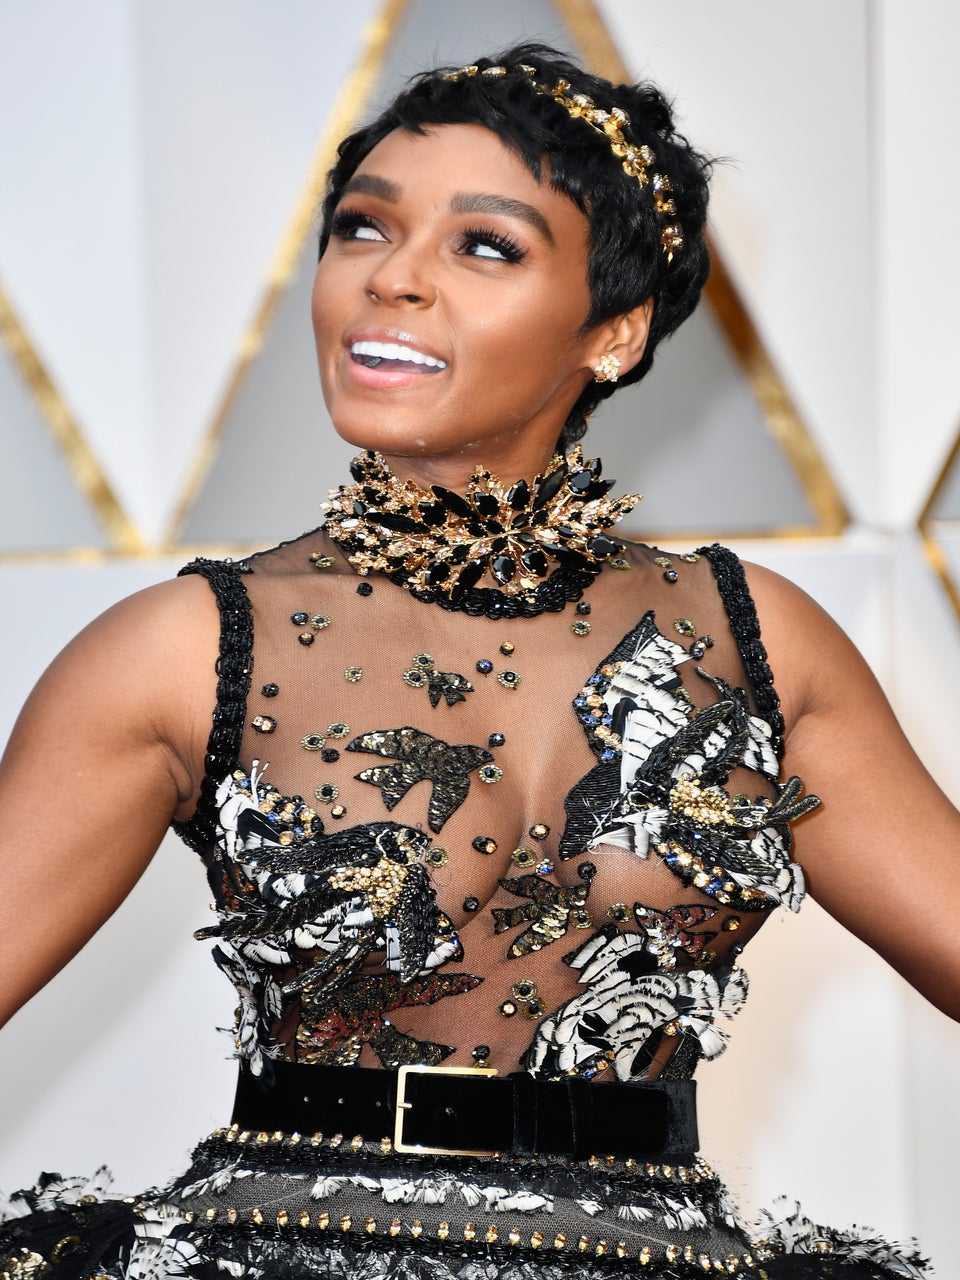 Janelle Monáe's Beauty Reign Is Unmatched At The 2017 Academy Awards